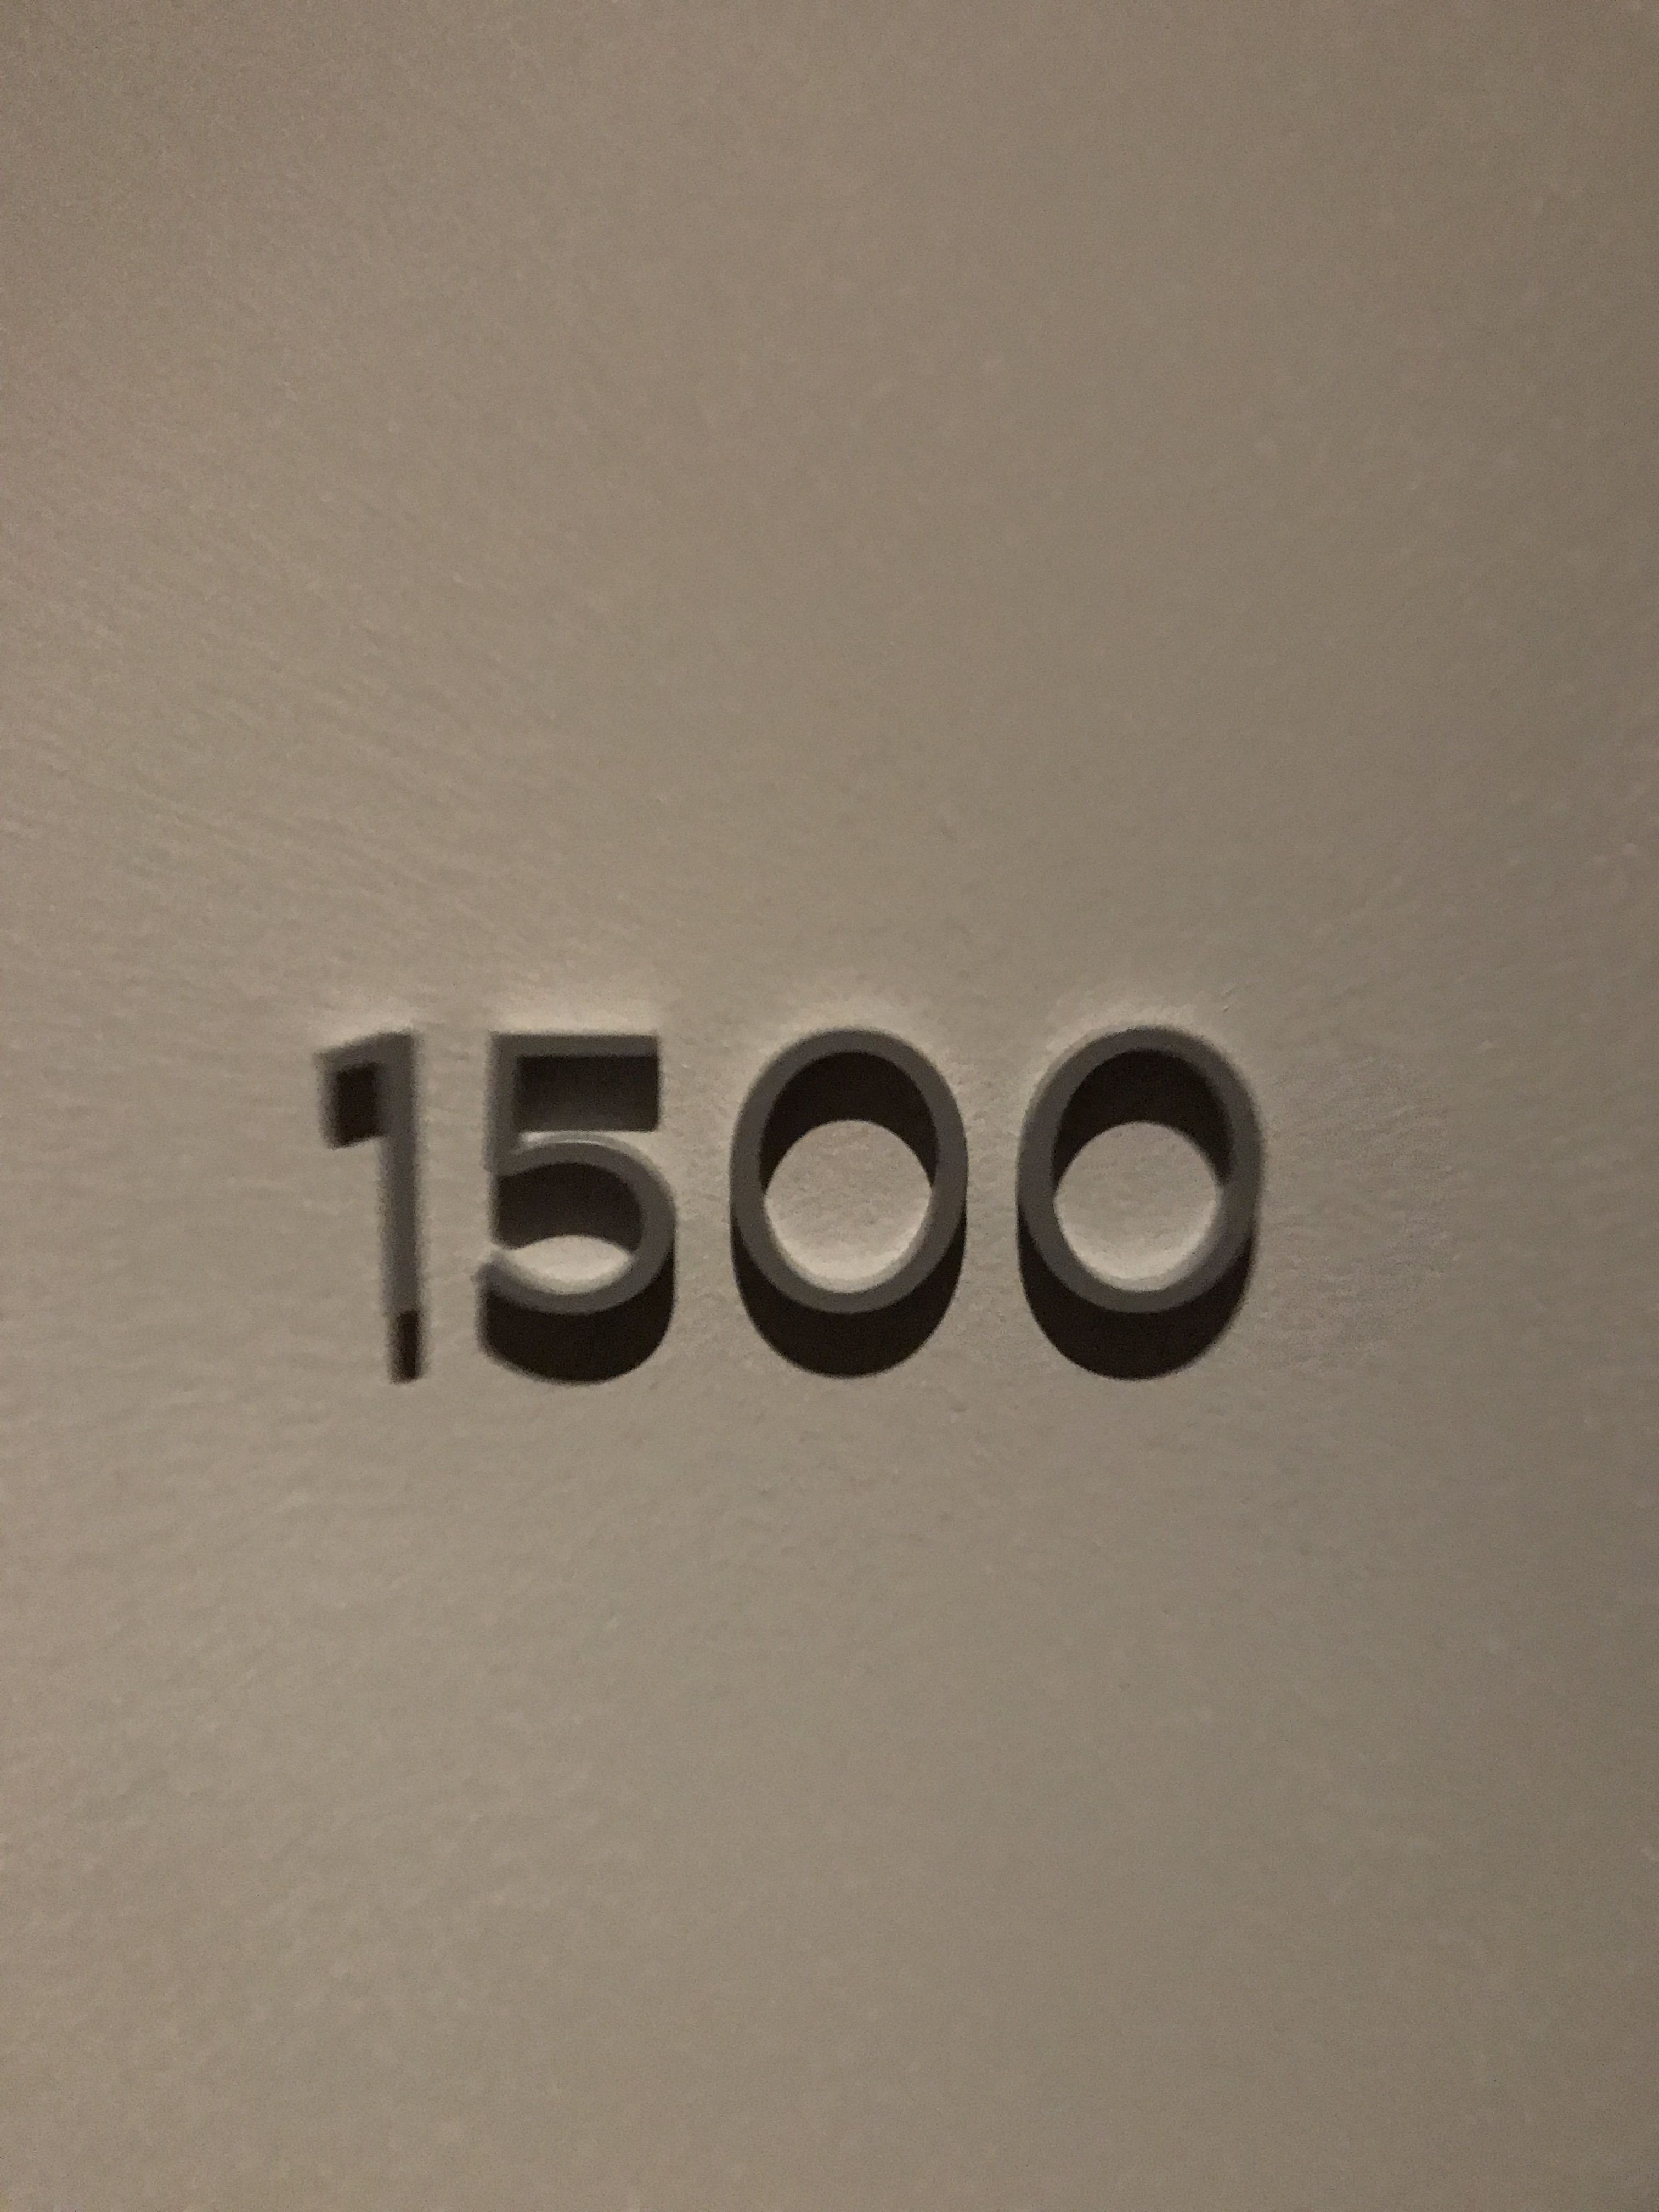 apt numbers and signage throughout 1600 wg pinterest signage